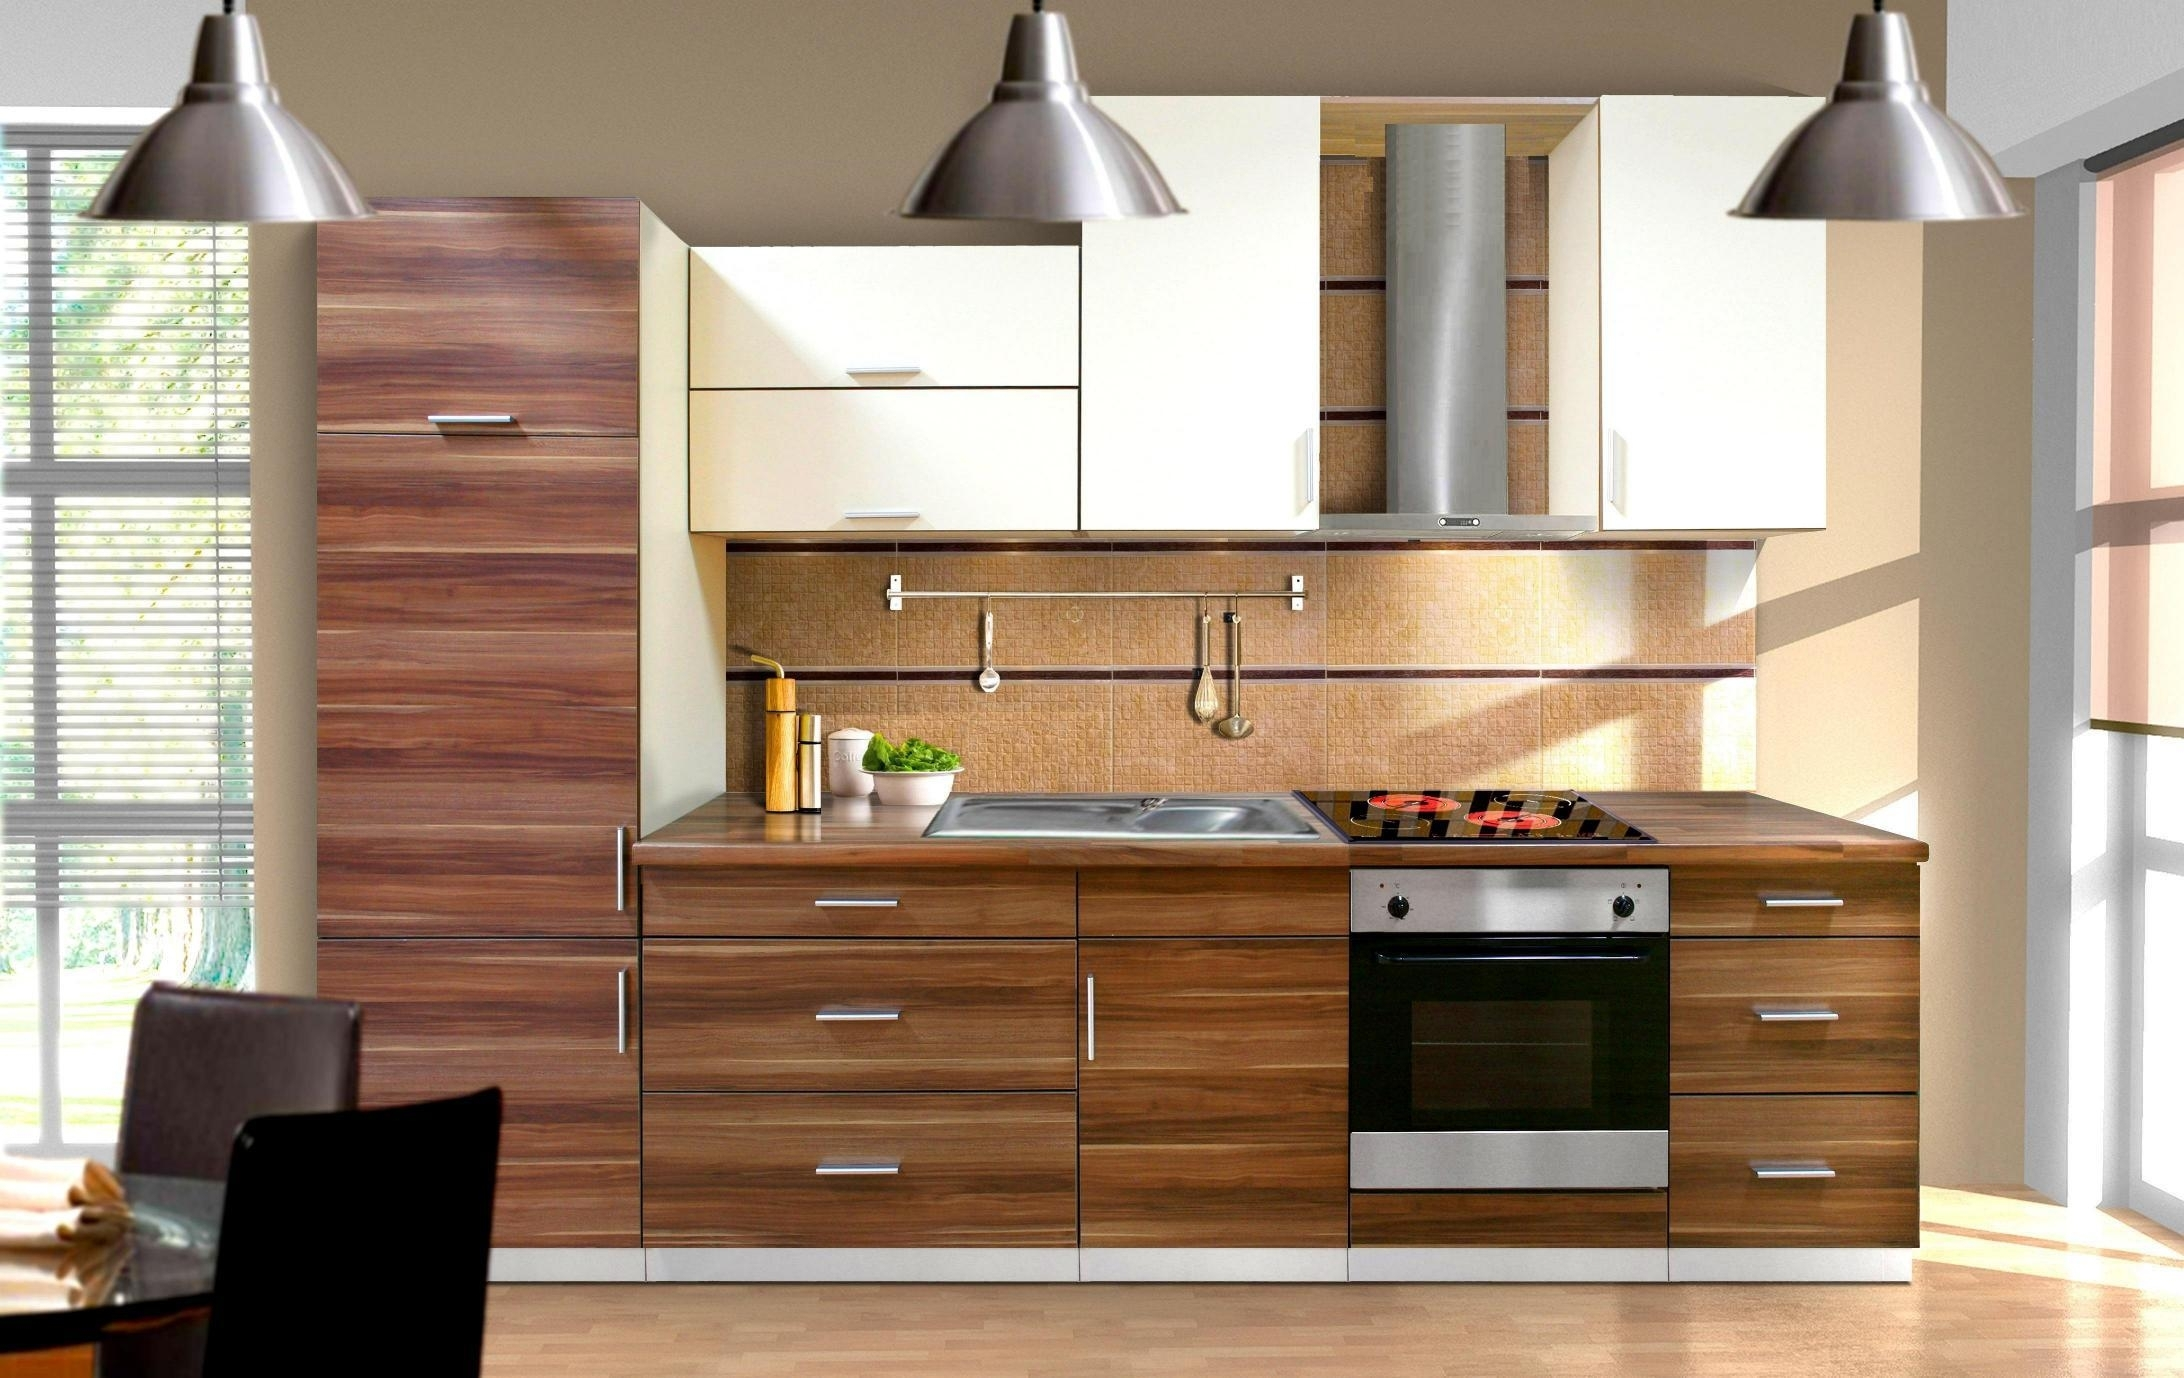 Best Material For Kitchen Cabinet Hardware